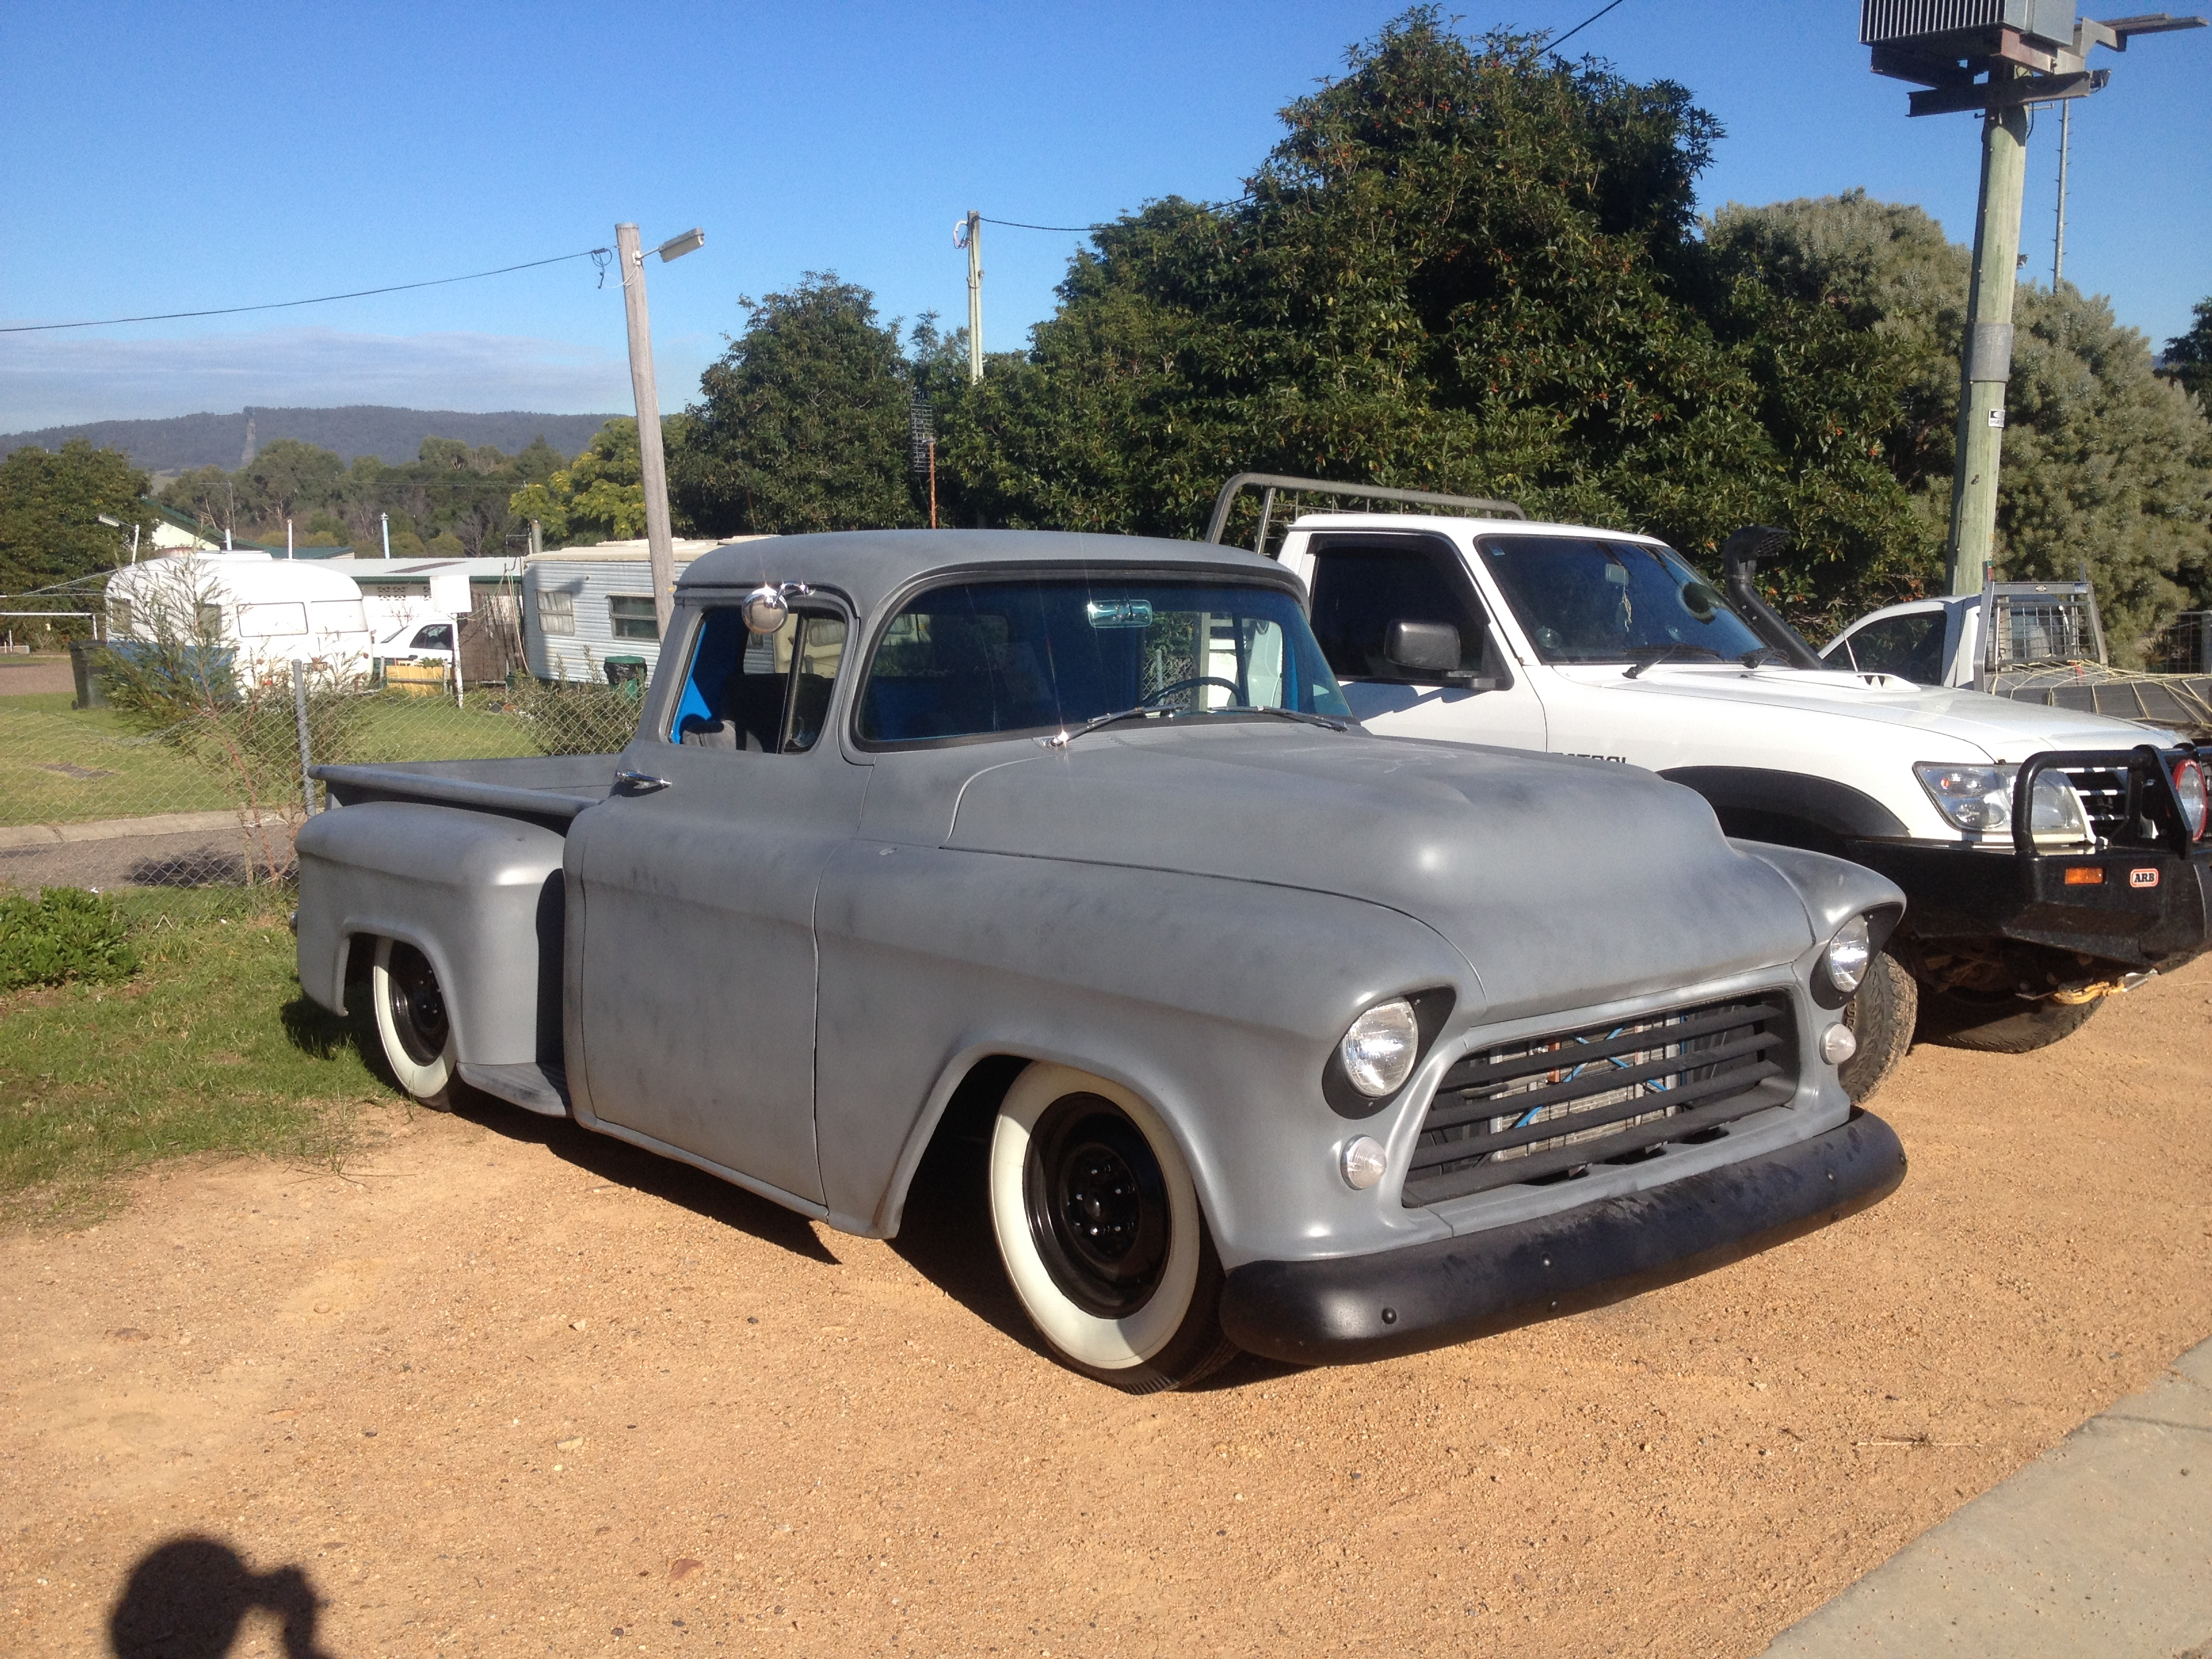 Spotted this slammed truck today, a pretty rare sight here in ...